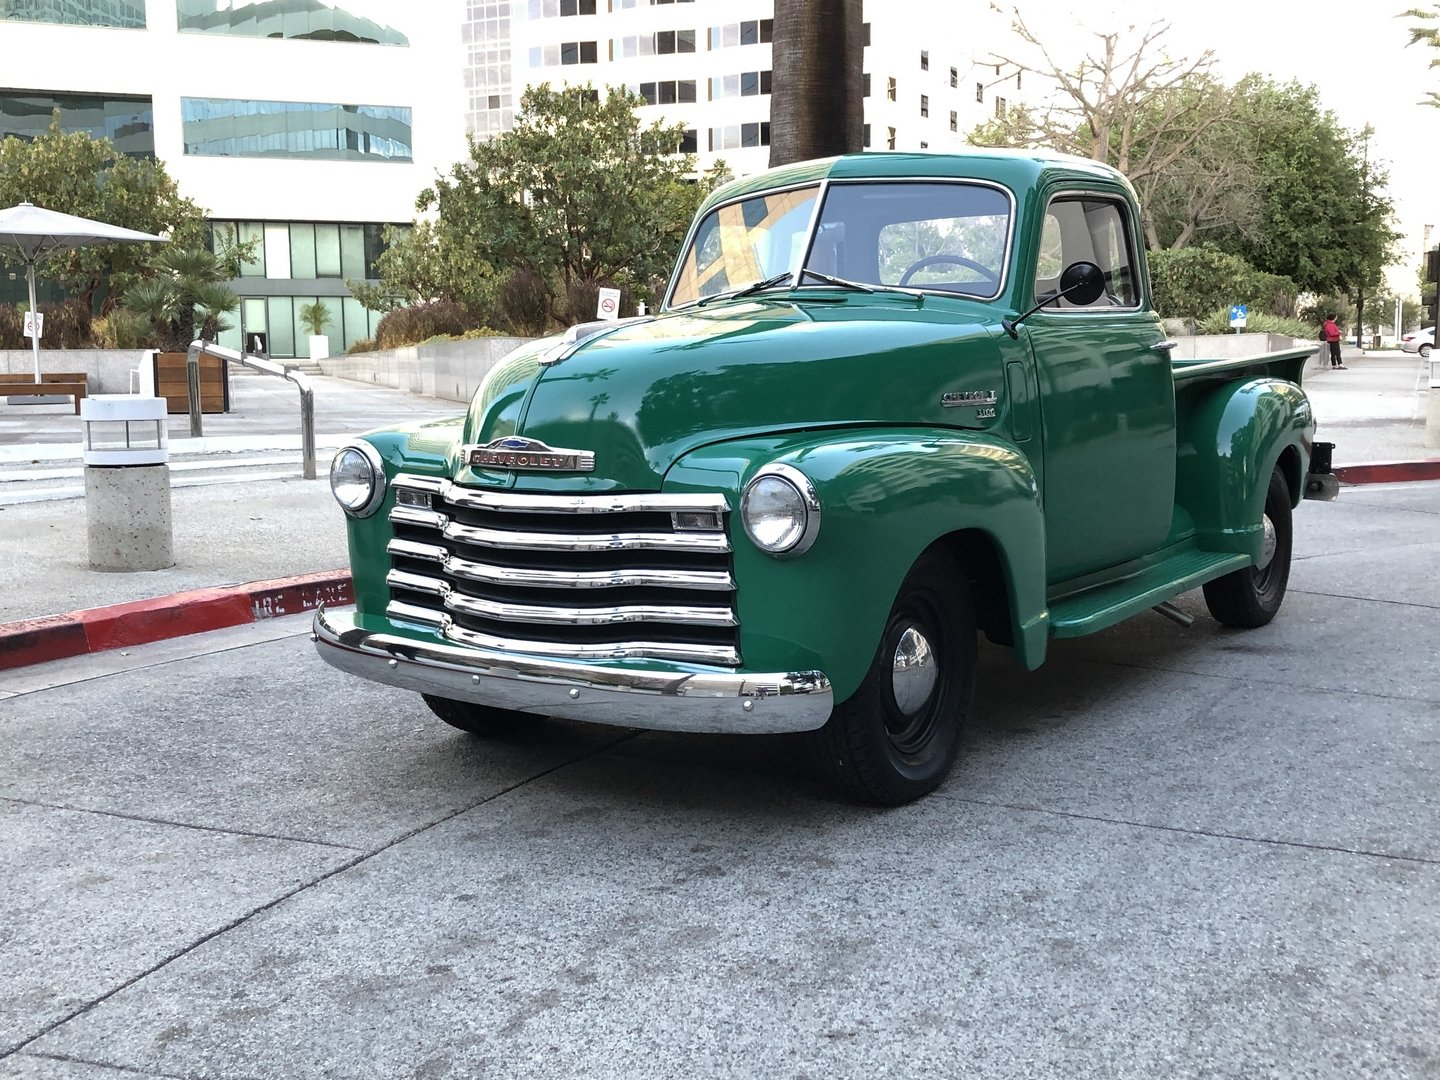 1950 Chevrolet Half Ton 3100 For Sale (picture 2 of 10)